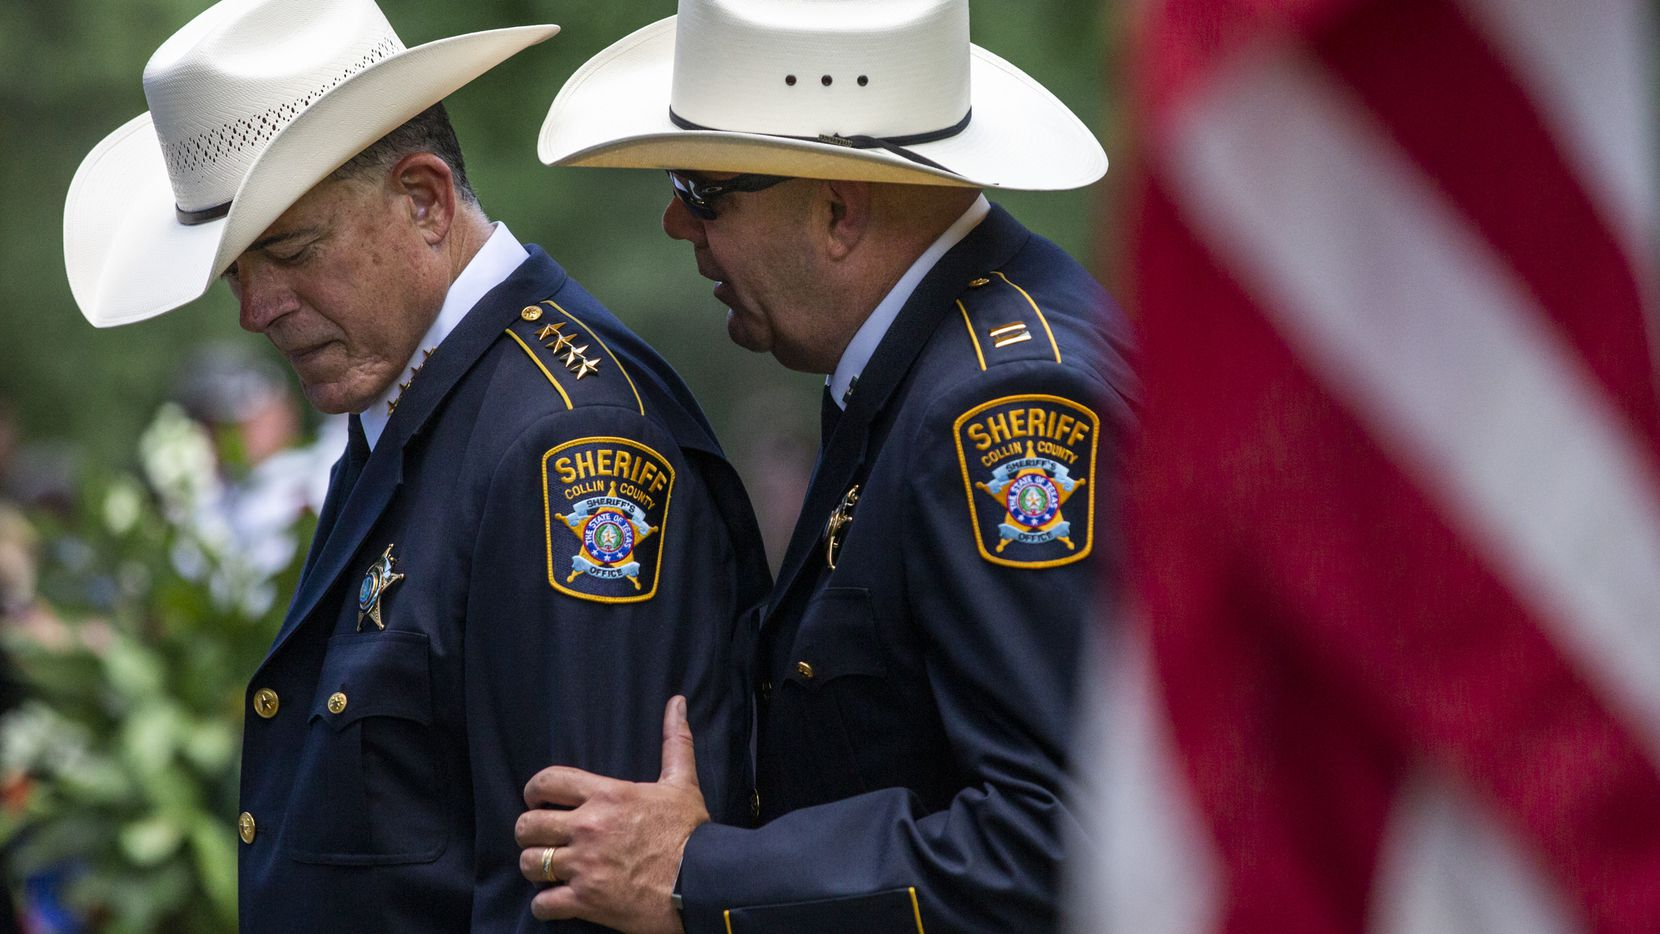 Collin County Sheriff Jim Skinner (left) has left questions unanswered about an improper traffic stop by one of his deputies.